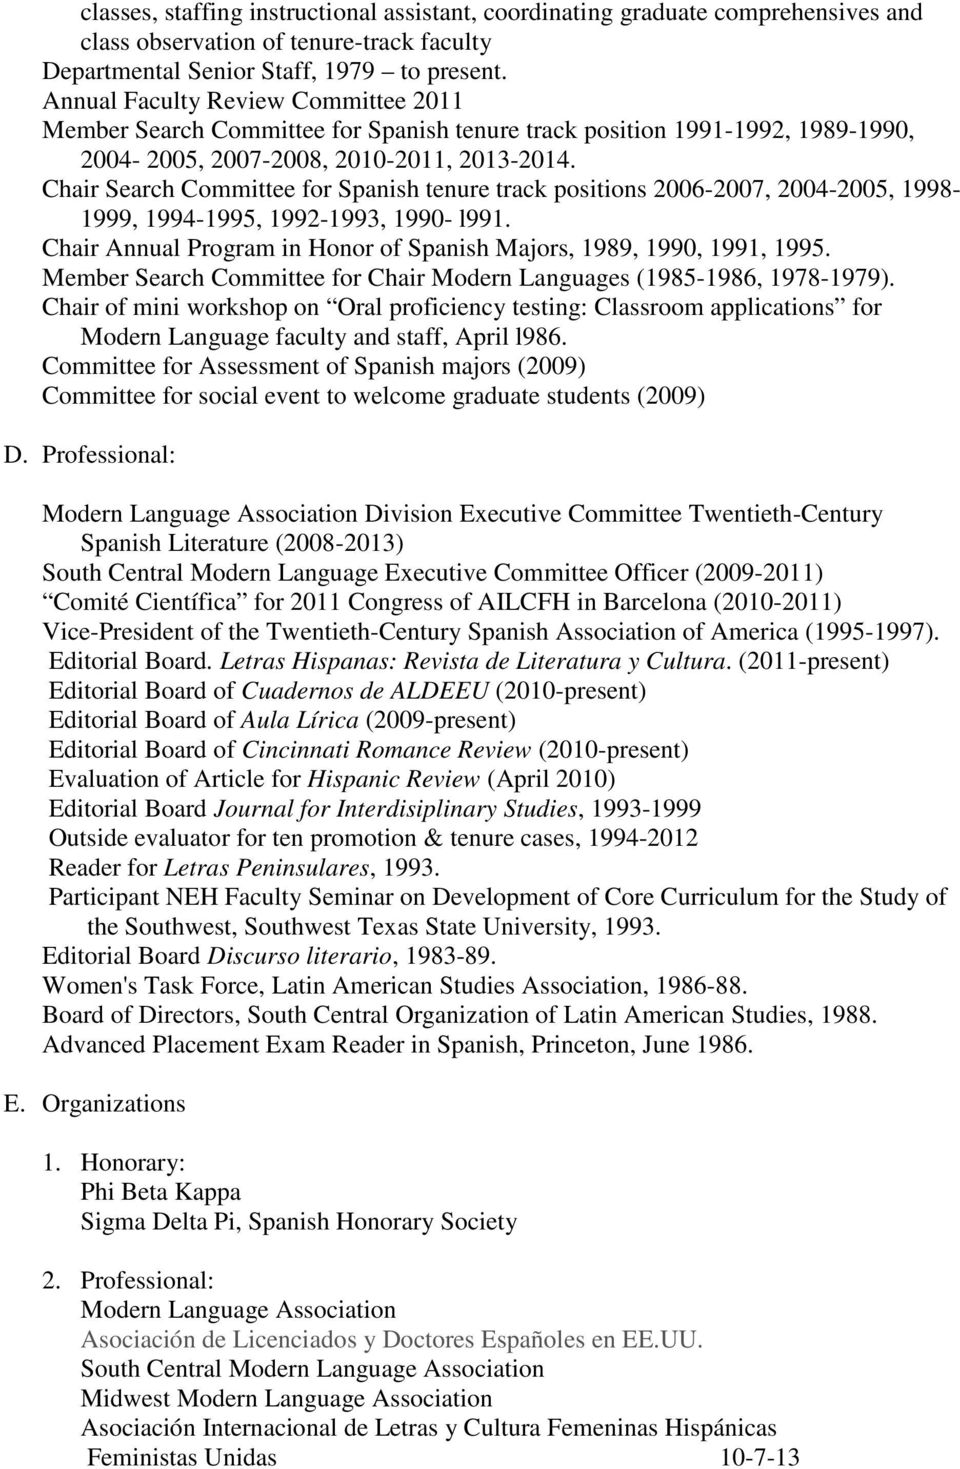 Chair Search Committee for Spanish tenure track positions 2006-2007, 2004-2005, 1998-1999, 1994-1995, 1992-1993, 1990- l991. Chair Annual Program in Honor of Spanish Majors, 1989, 1990, 1991, 1995.